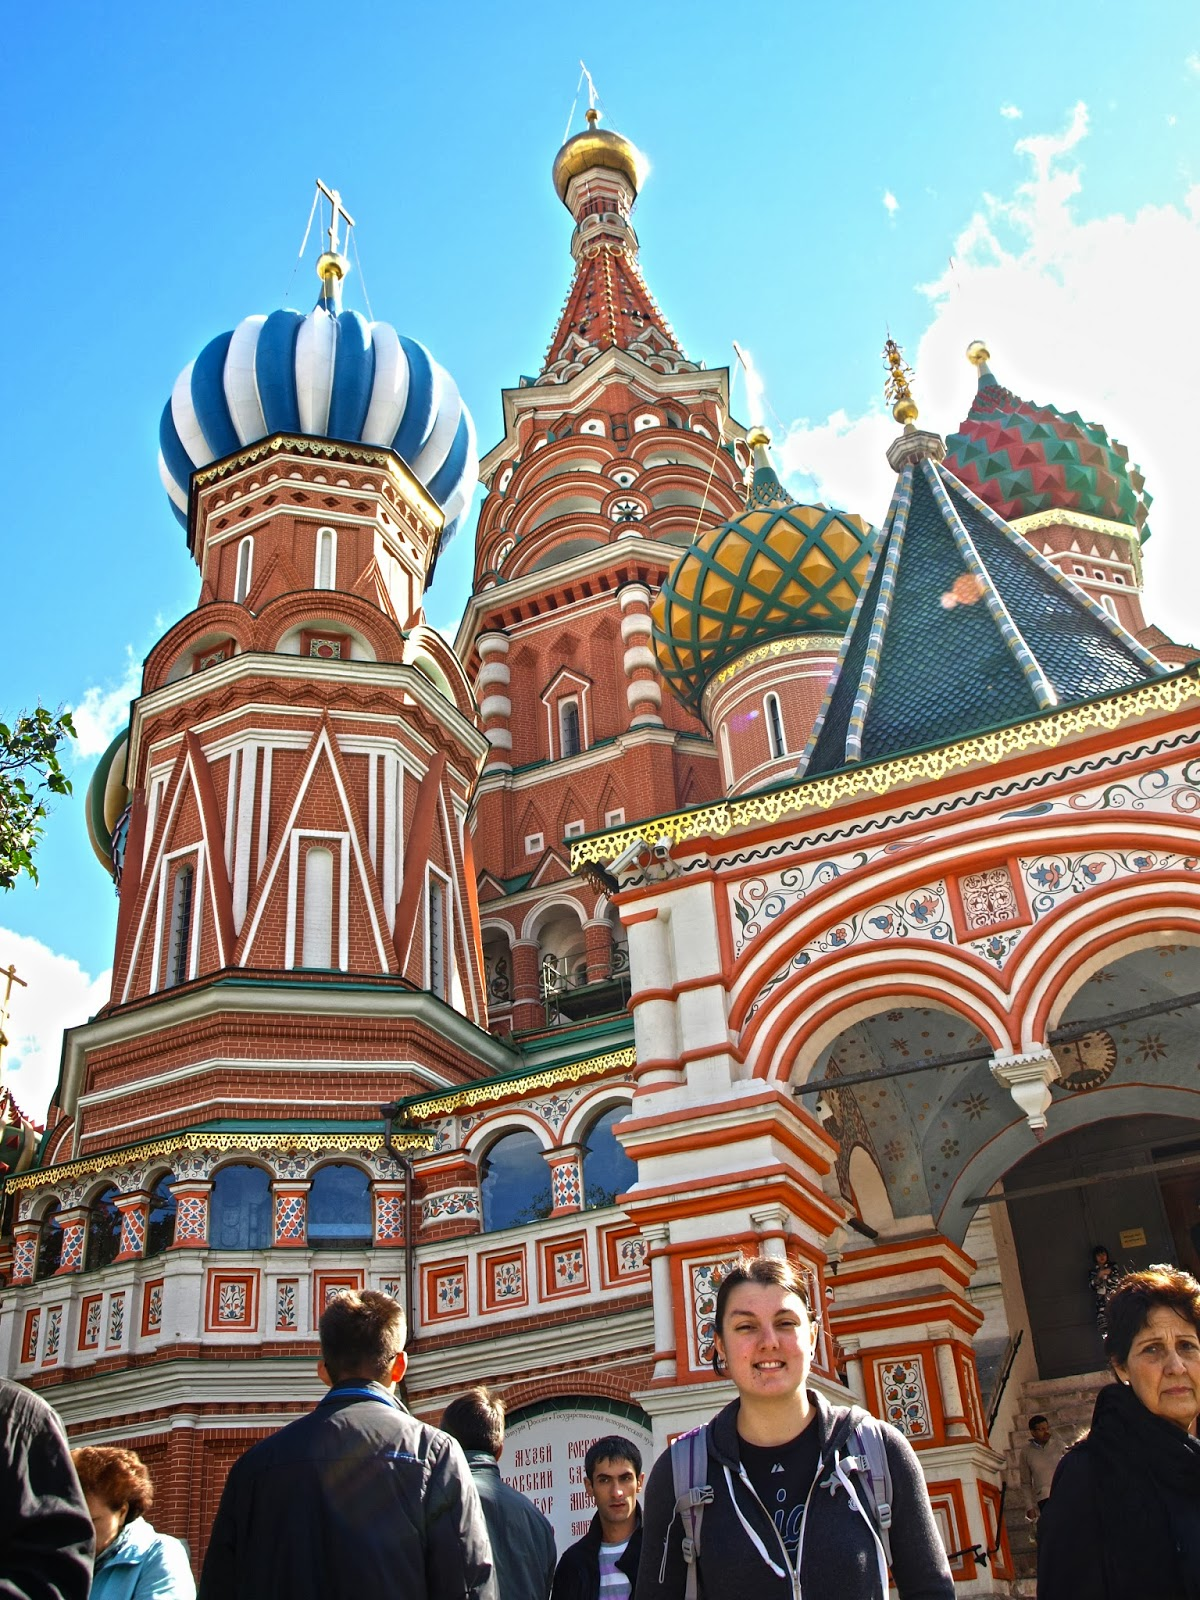 Russia, Moscow, russian visa, tourist visa, stamps, airport, domodedovo, application, how to apply for a russian visa, help applying for a russian visa, voucher, confirmation, invitation, form, passport, travel blog, travel advice, blogger, backpacker. red square, st basils cathedral, kremlin